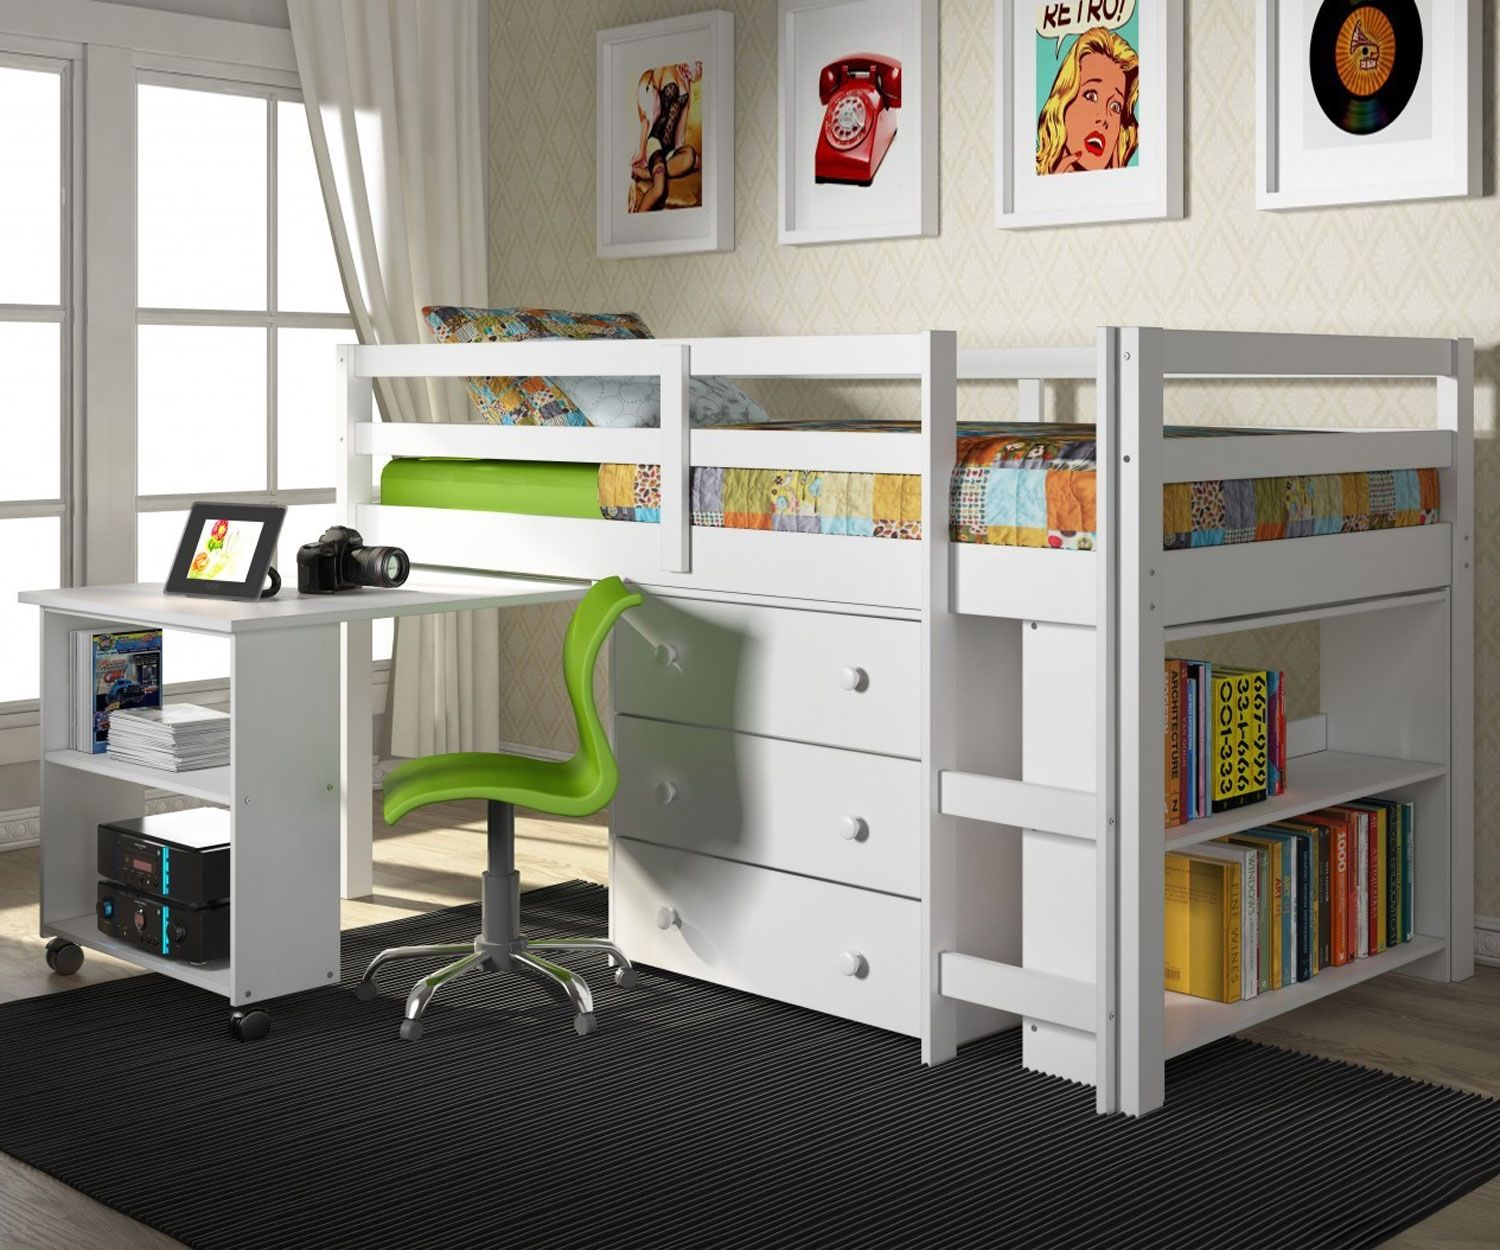 kids twin loft bed with storage only for kids Donco Low